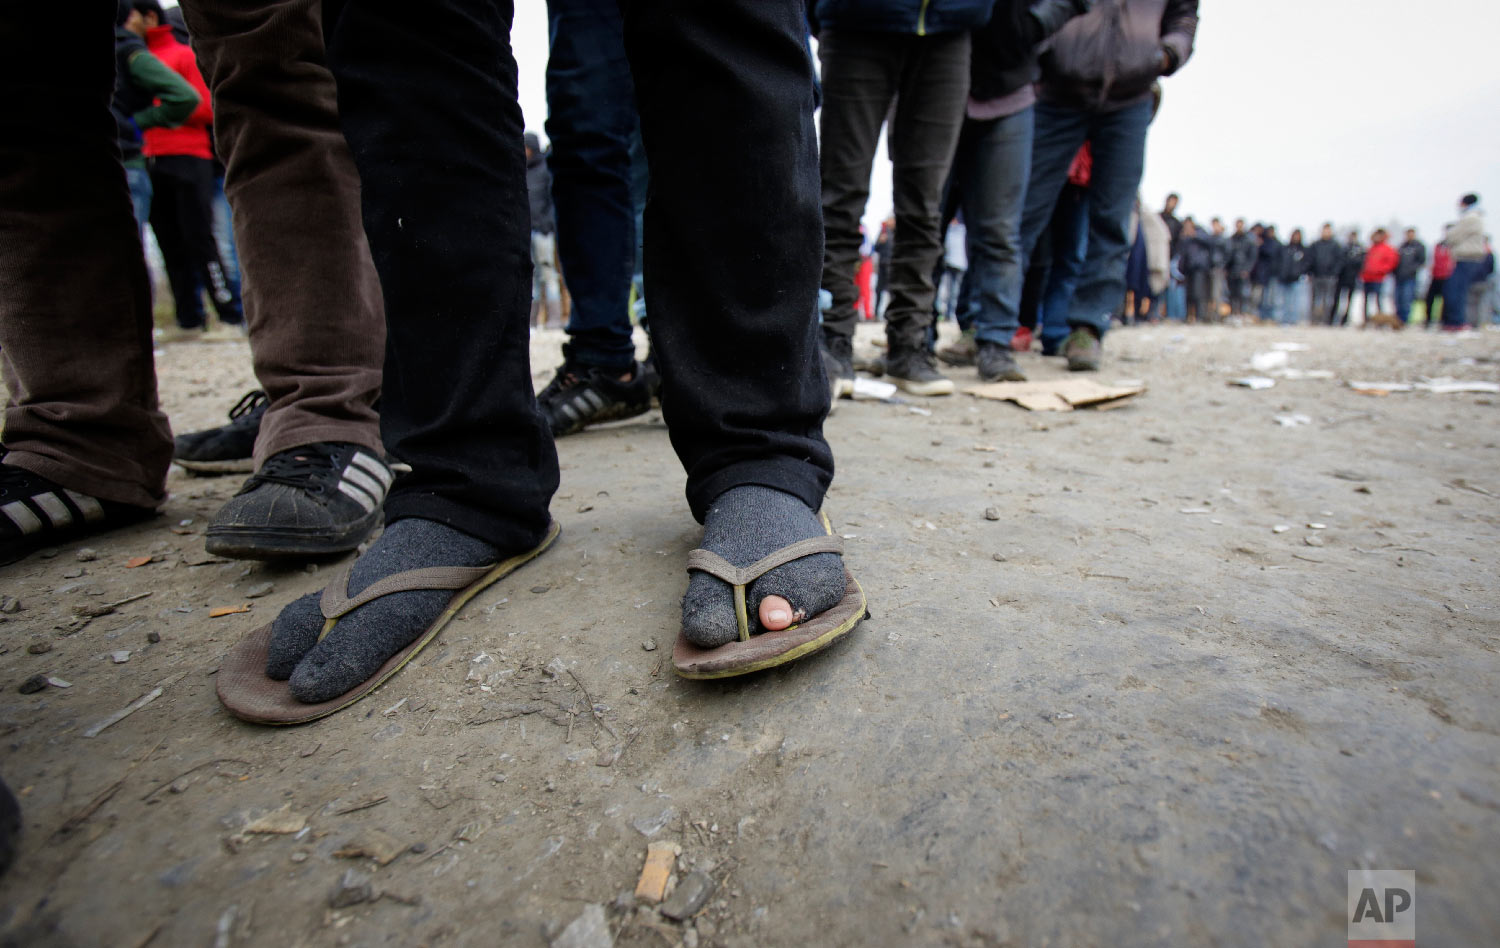 Migrants wearing tattered footwear wait in long lines for food distribution at a camp in Velika Kladusa, Bosnia, close to the border to Croatia, Sunday, Nov. 18, 2018. (AP Photo/Amel Emric)